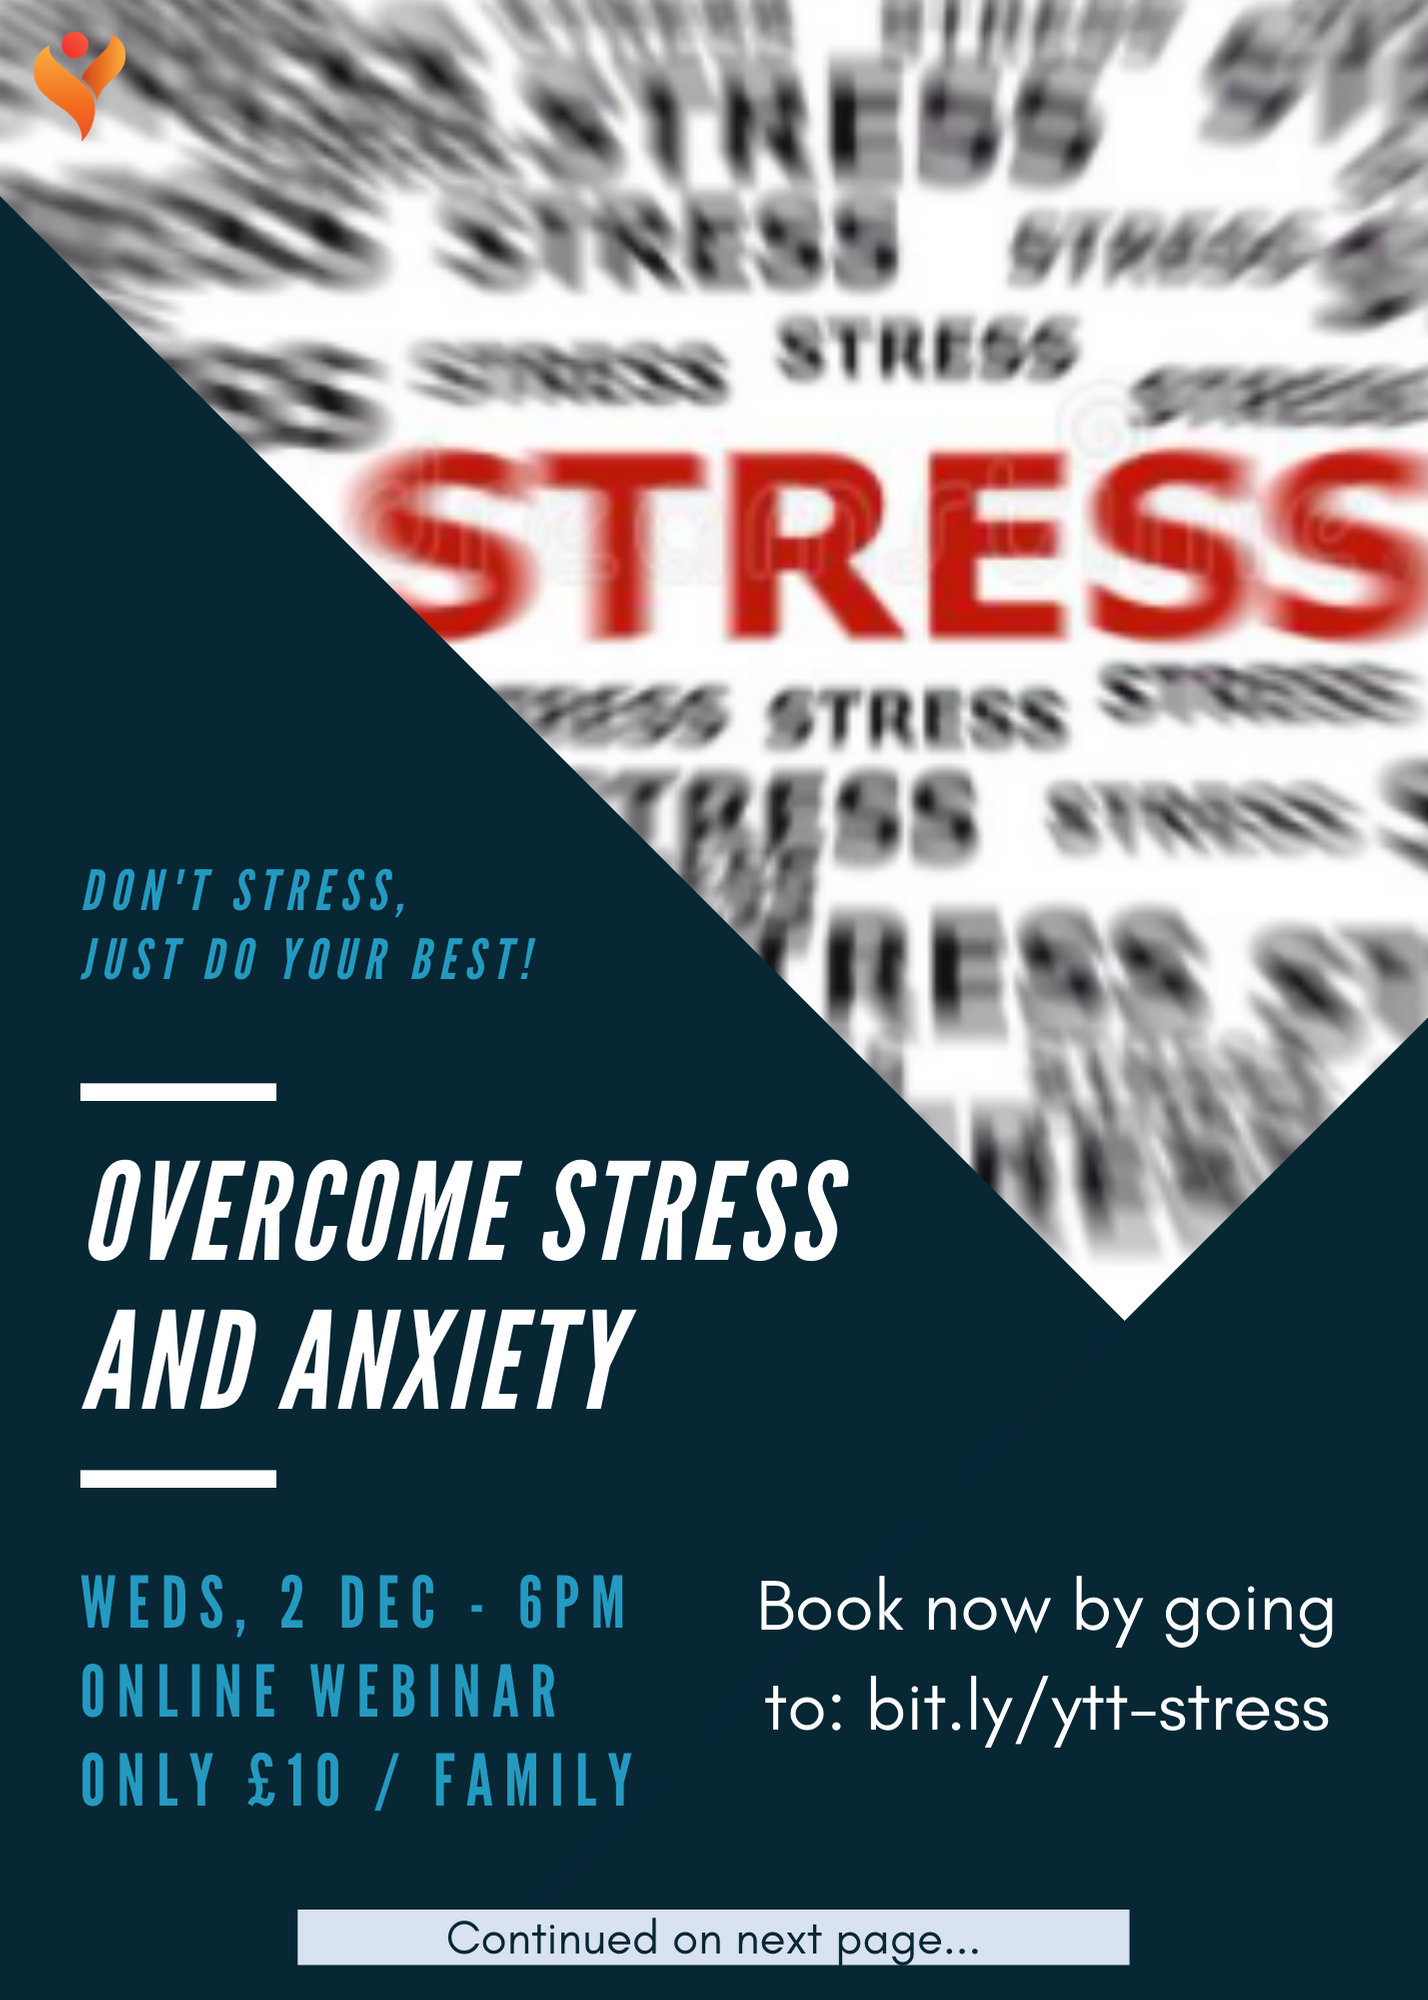 Overcome Stress and Anxiety poster